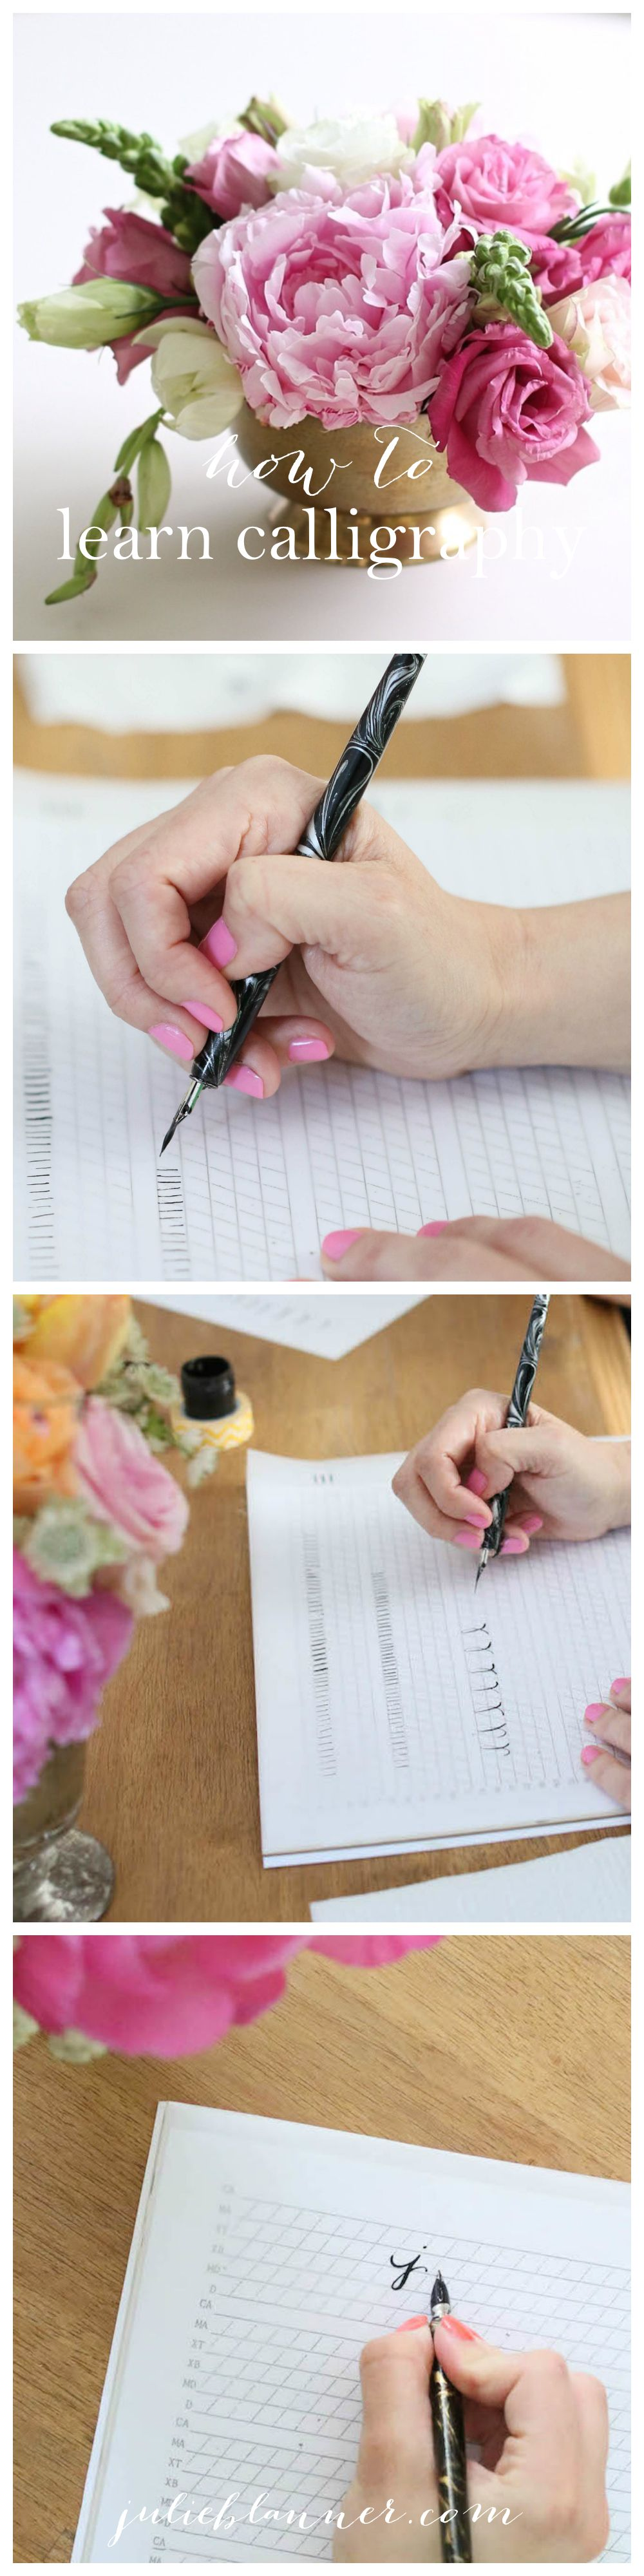 Learn calligraphy free printables and